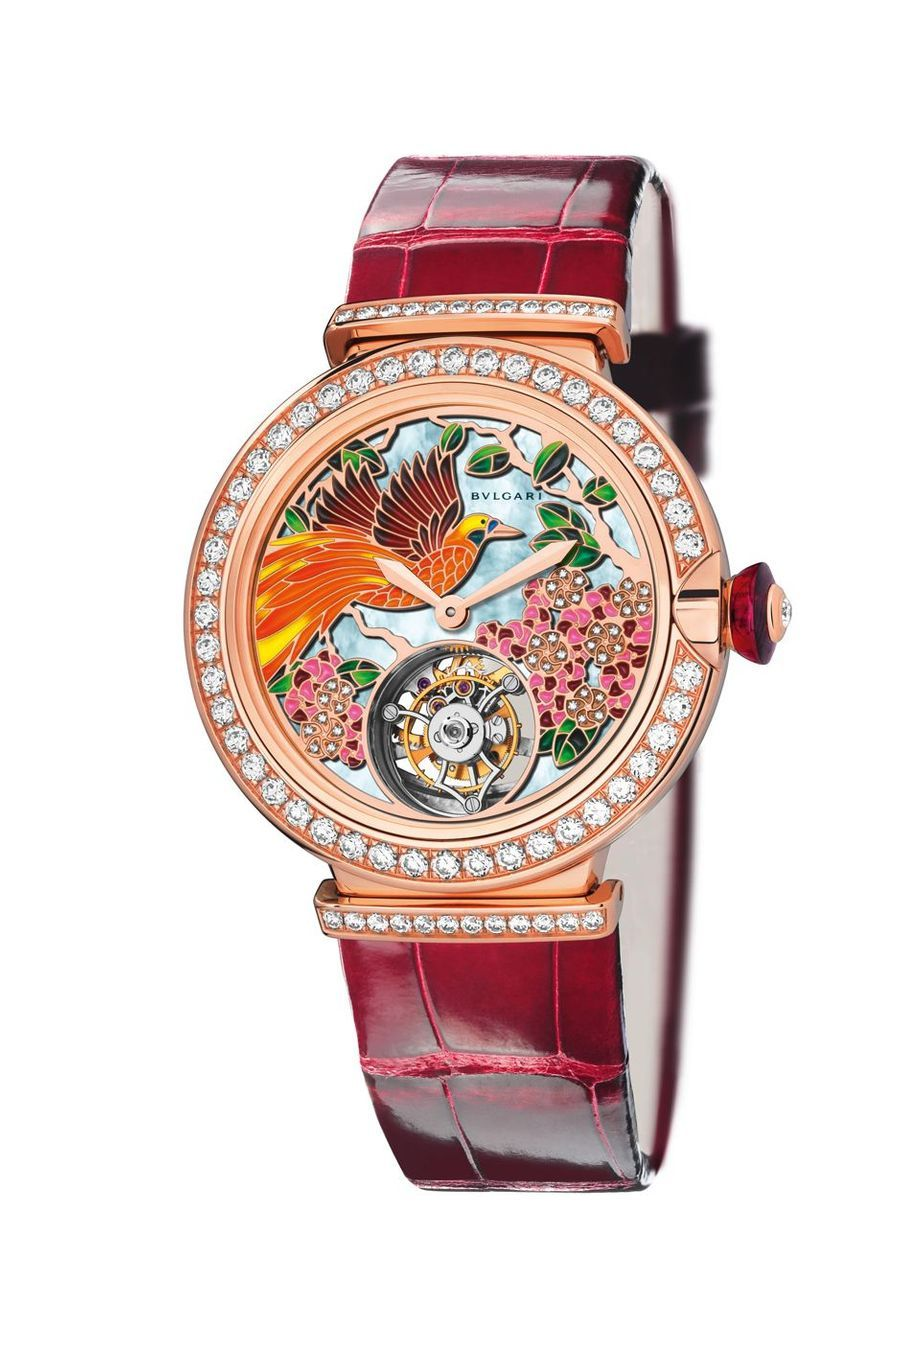 Il Giardino Paradiso en or rose, diamants et émail, mouvement automatique avec tourbillon, bracelet en alligator. Bulgari. 109 000 €.